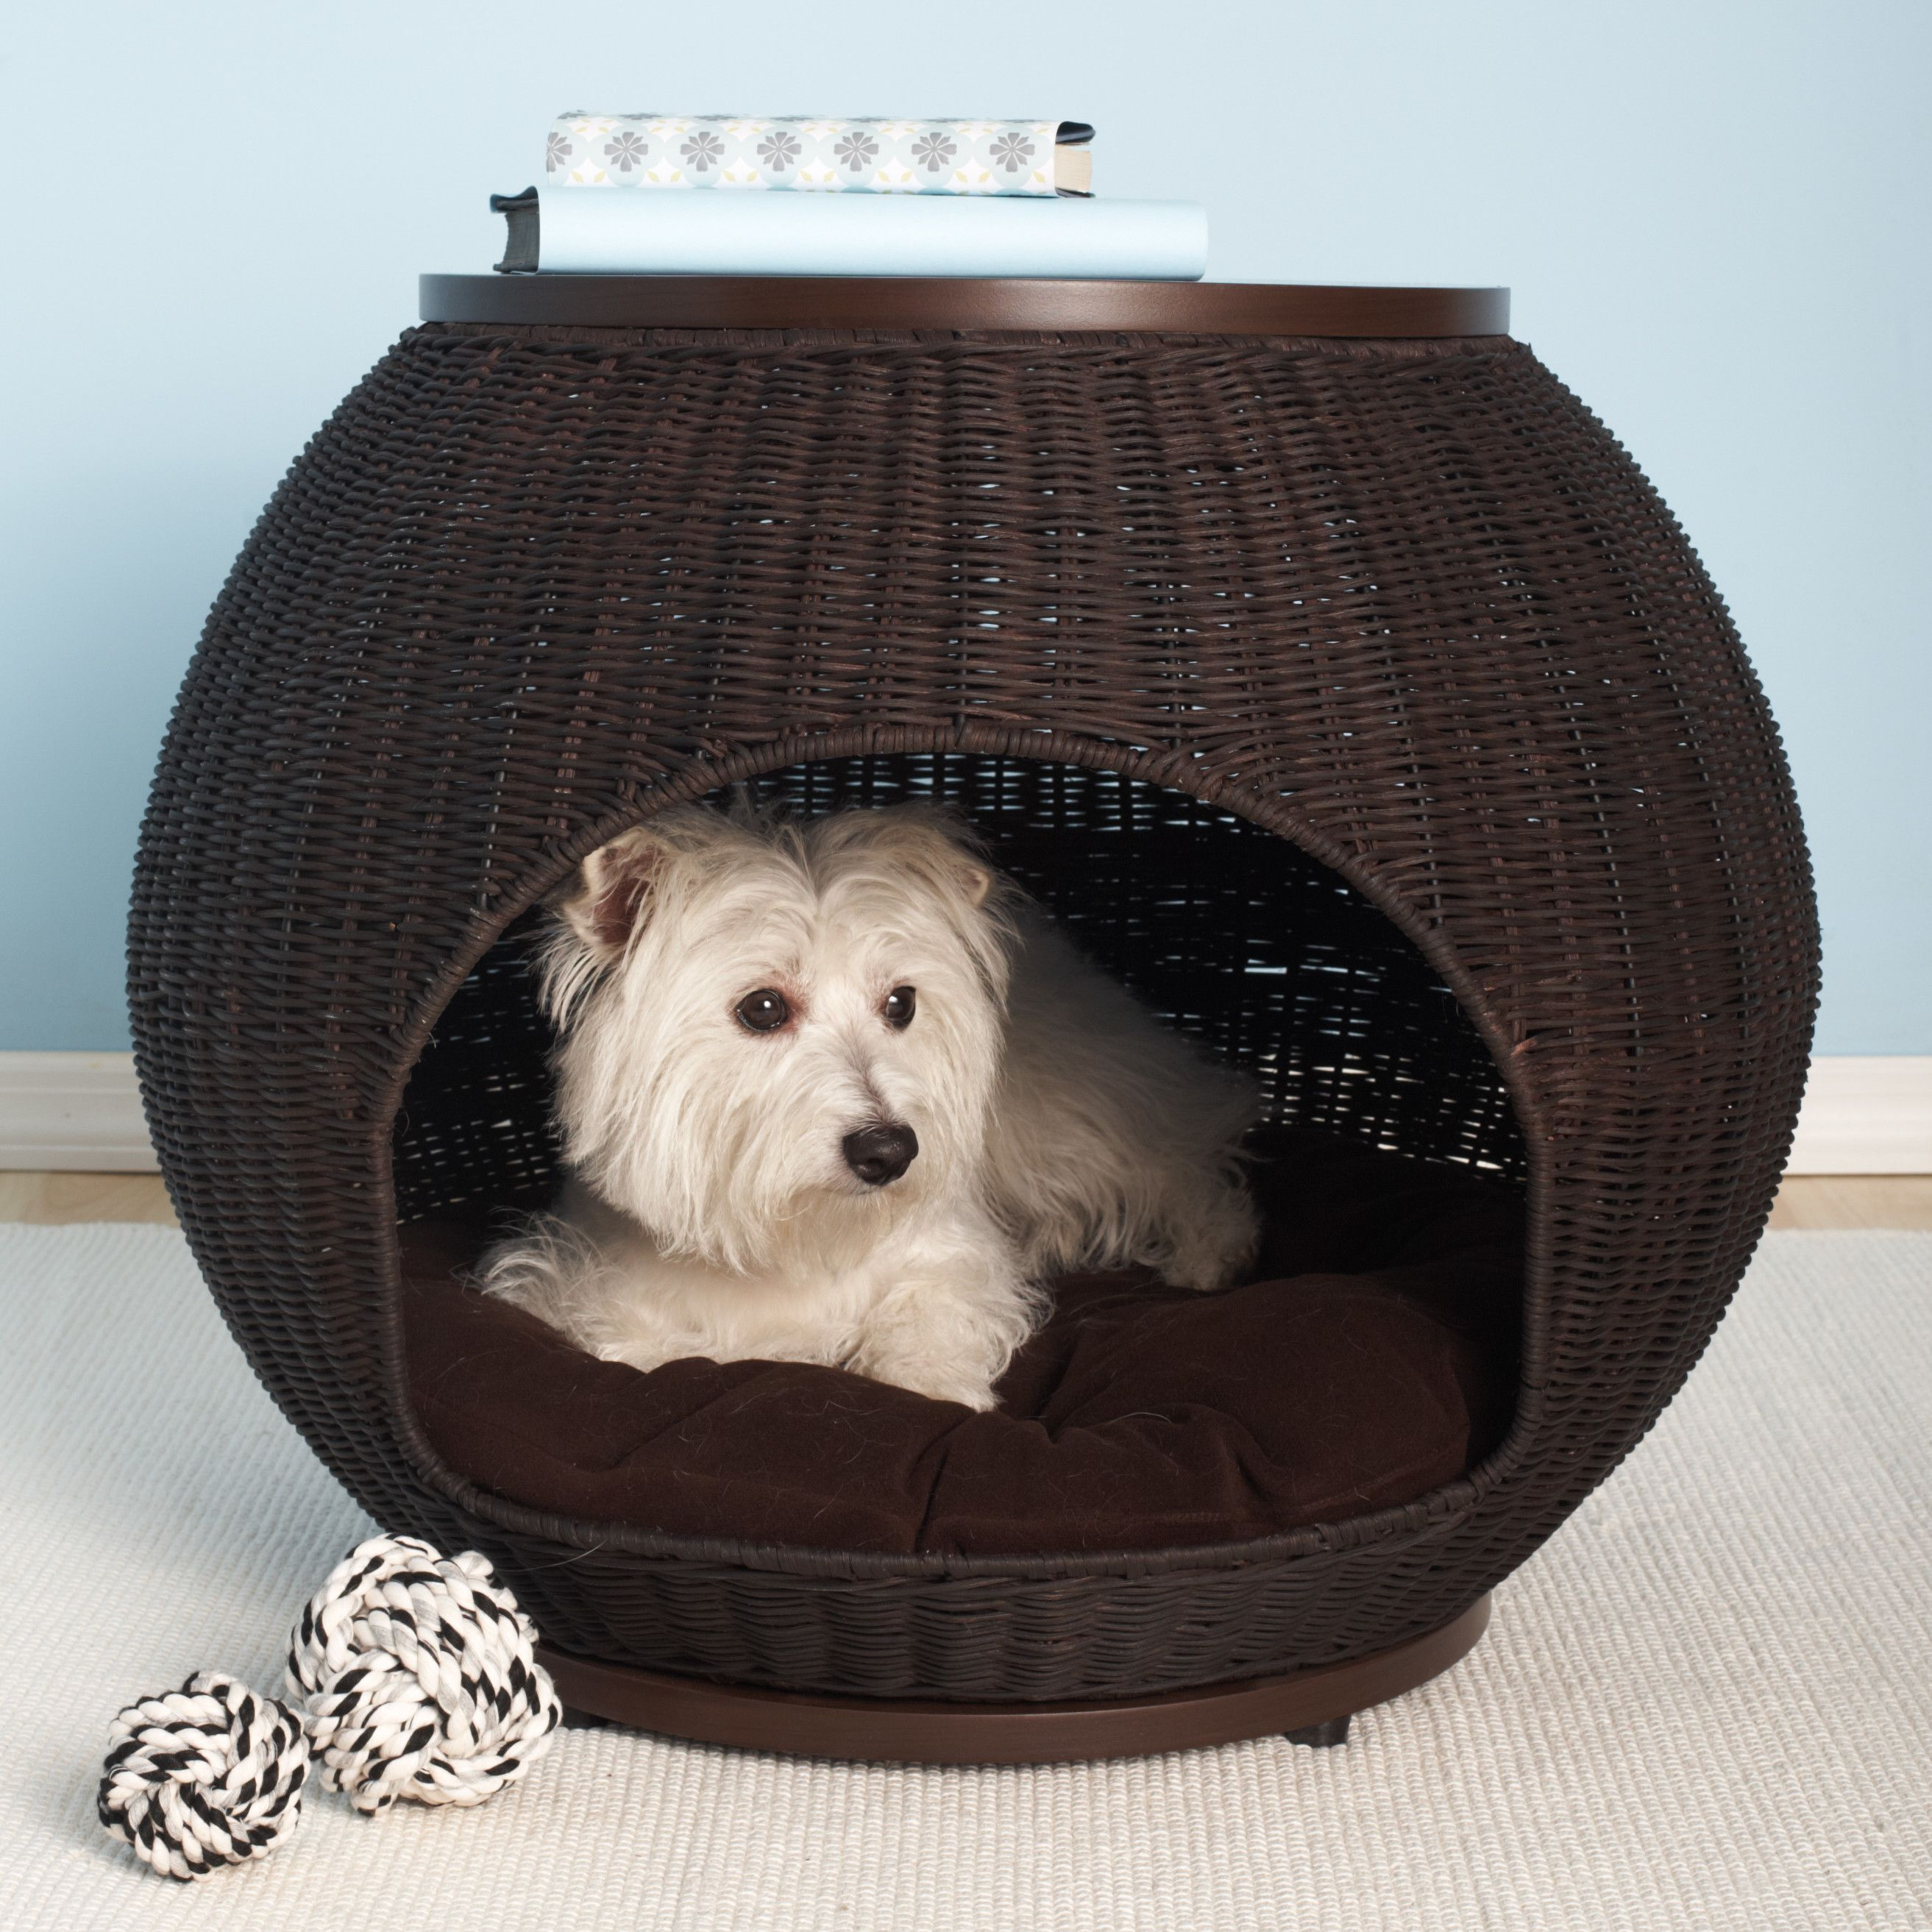 The Refined Canine The Igloo Deluxe End Table Dog Dome